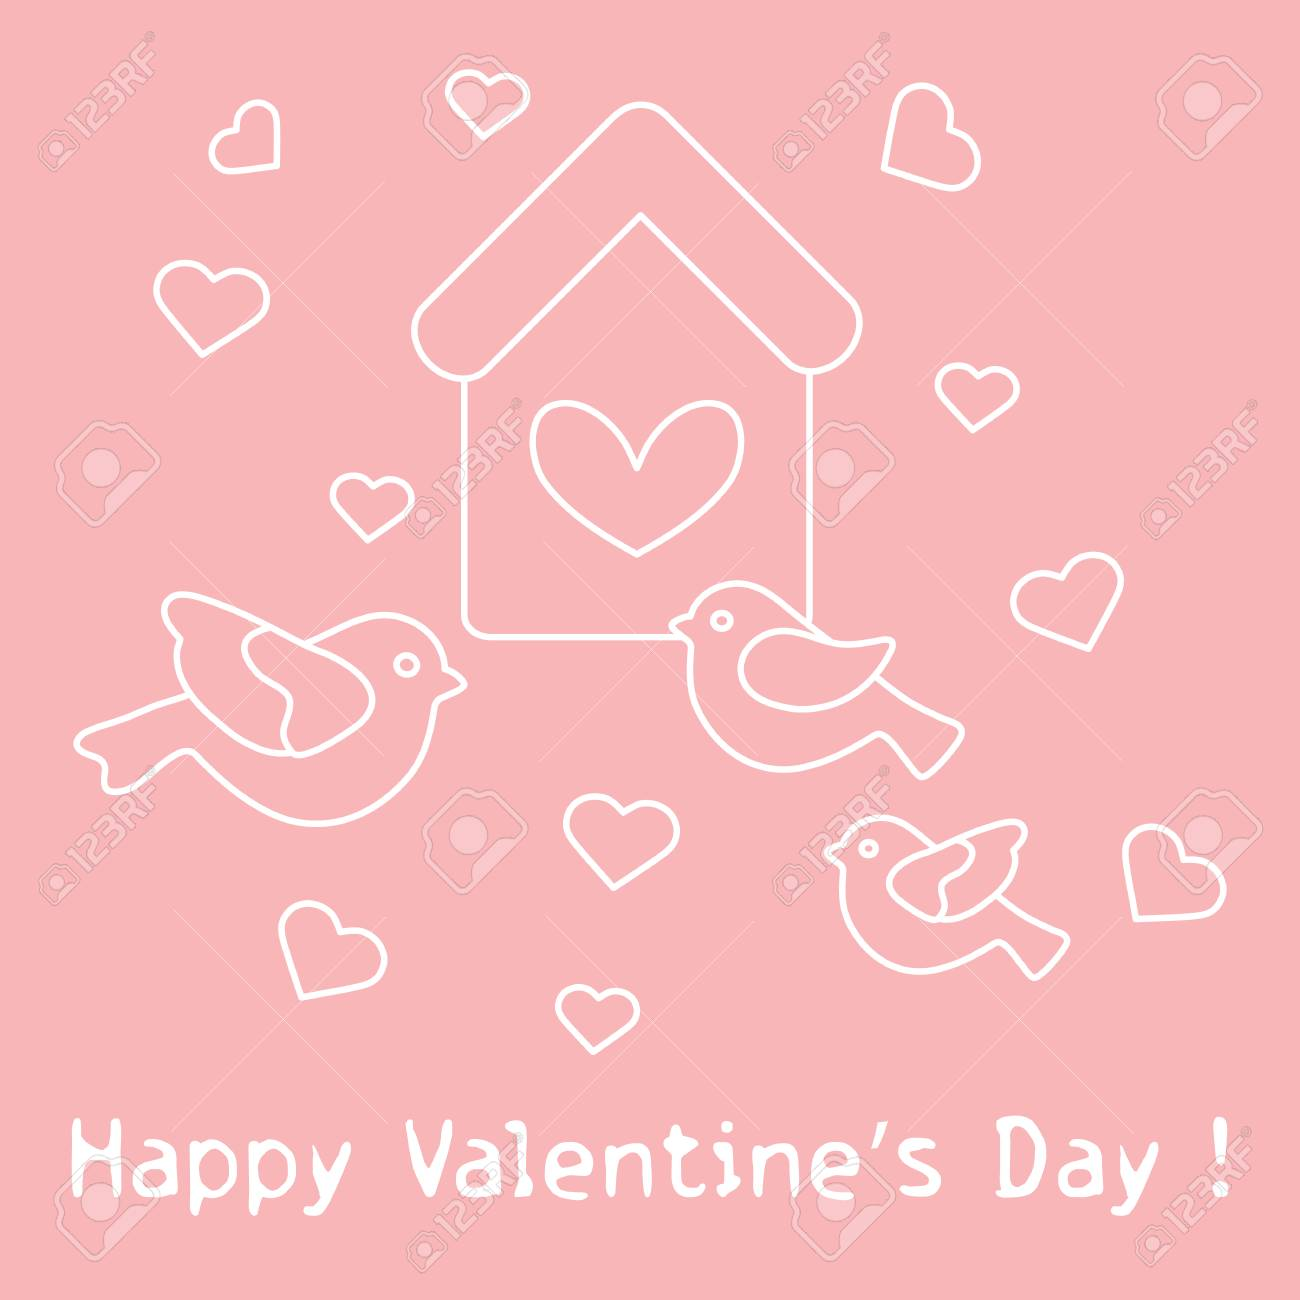 Cute picture with birds birdhouse and hearts template for design greeting card for valentines day cute picture with birds birdhouse and hearts template for design fabric print m4hsunfo